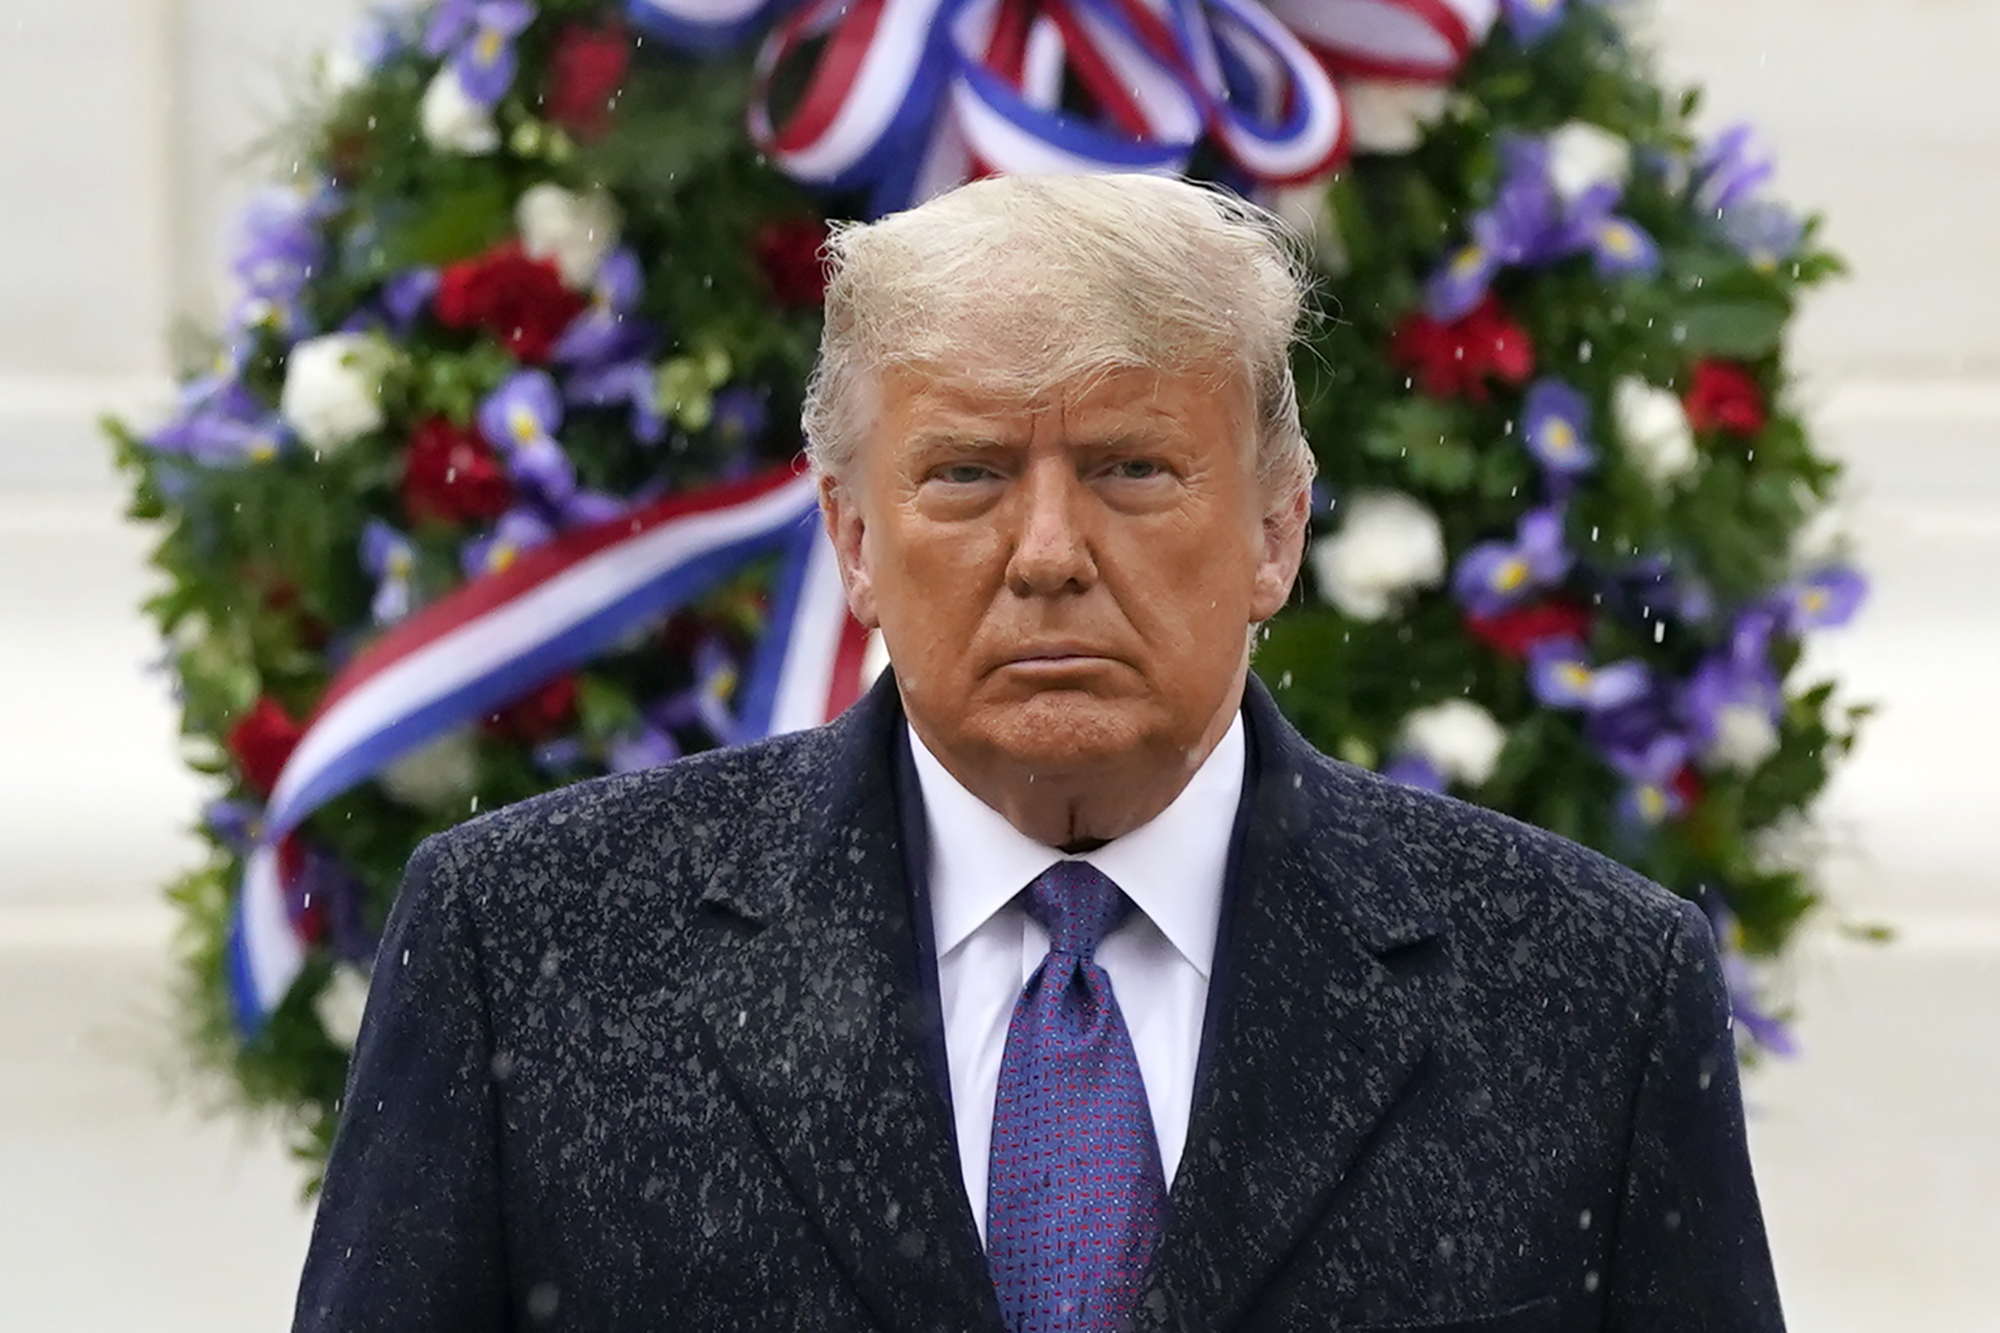 Donald Trump participates in a Veterans Day wreath laying ceremony at the Tomb of the Unknown Soldier at Arlington National Cemetery in Arlington, Va., Wednesday, Nov. 11, 2020. (AP Photo/Patrick Semansky)